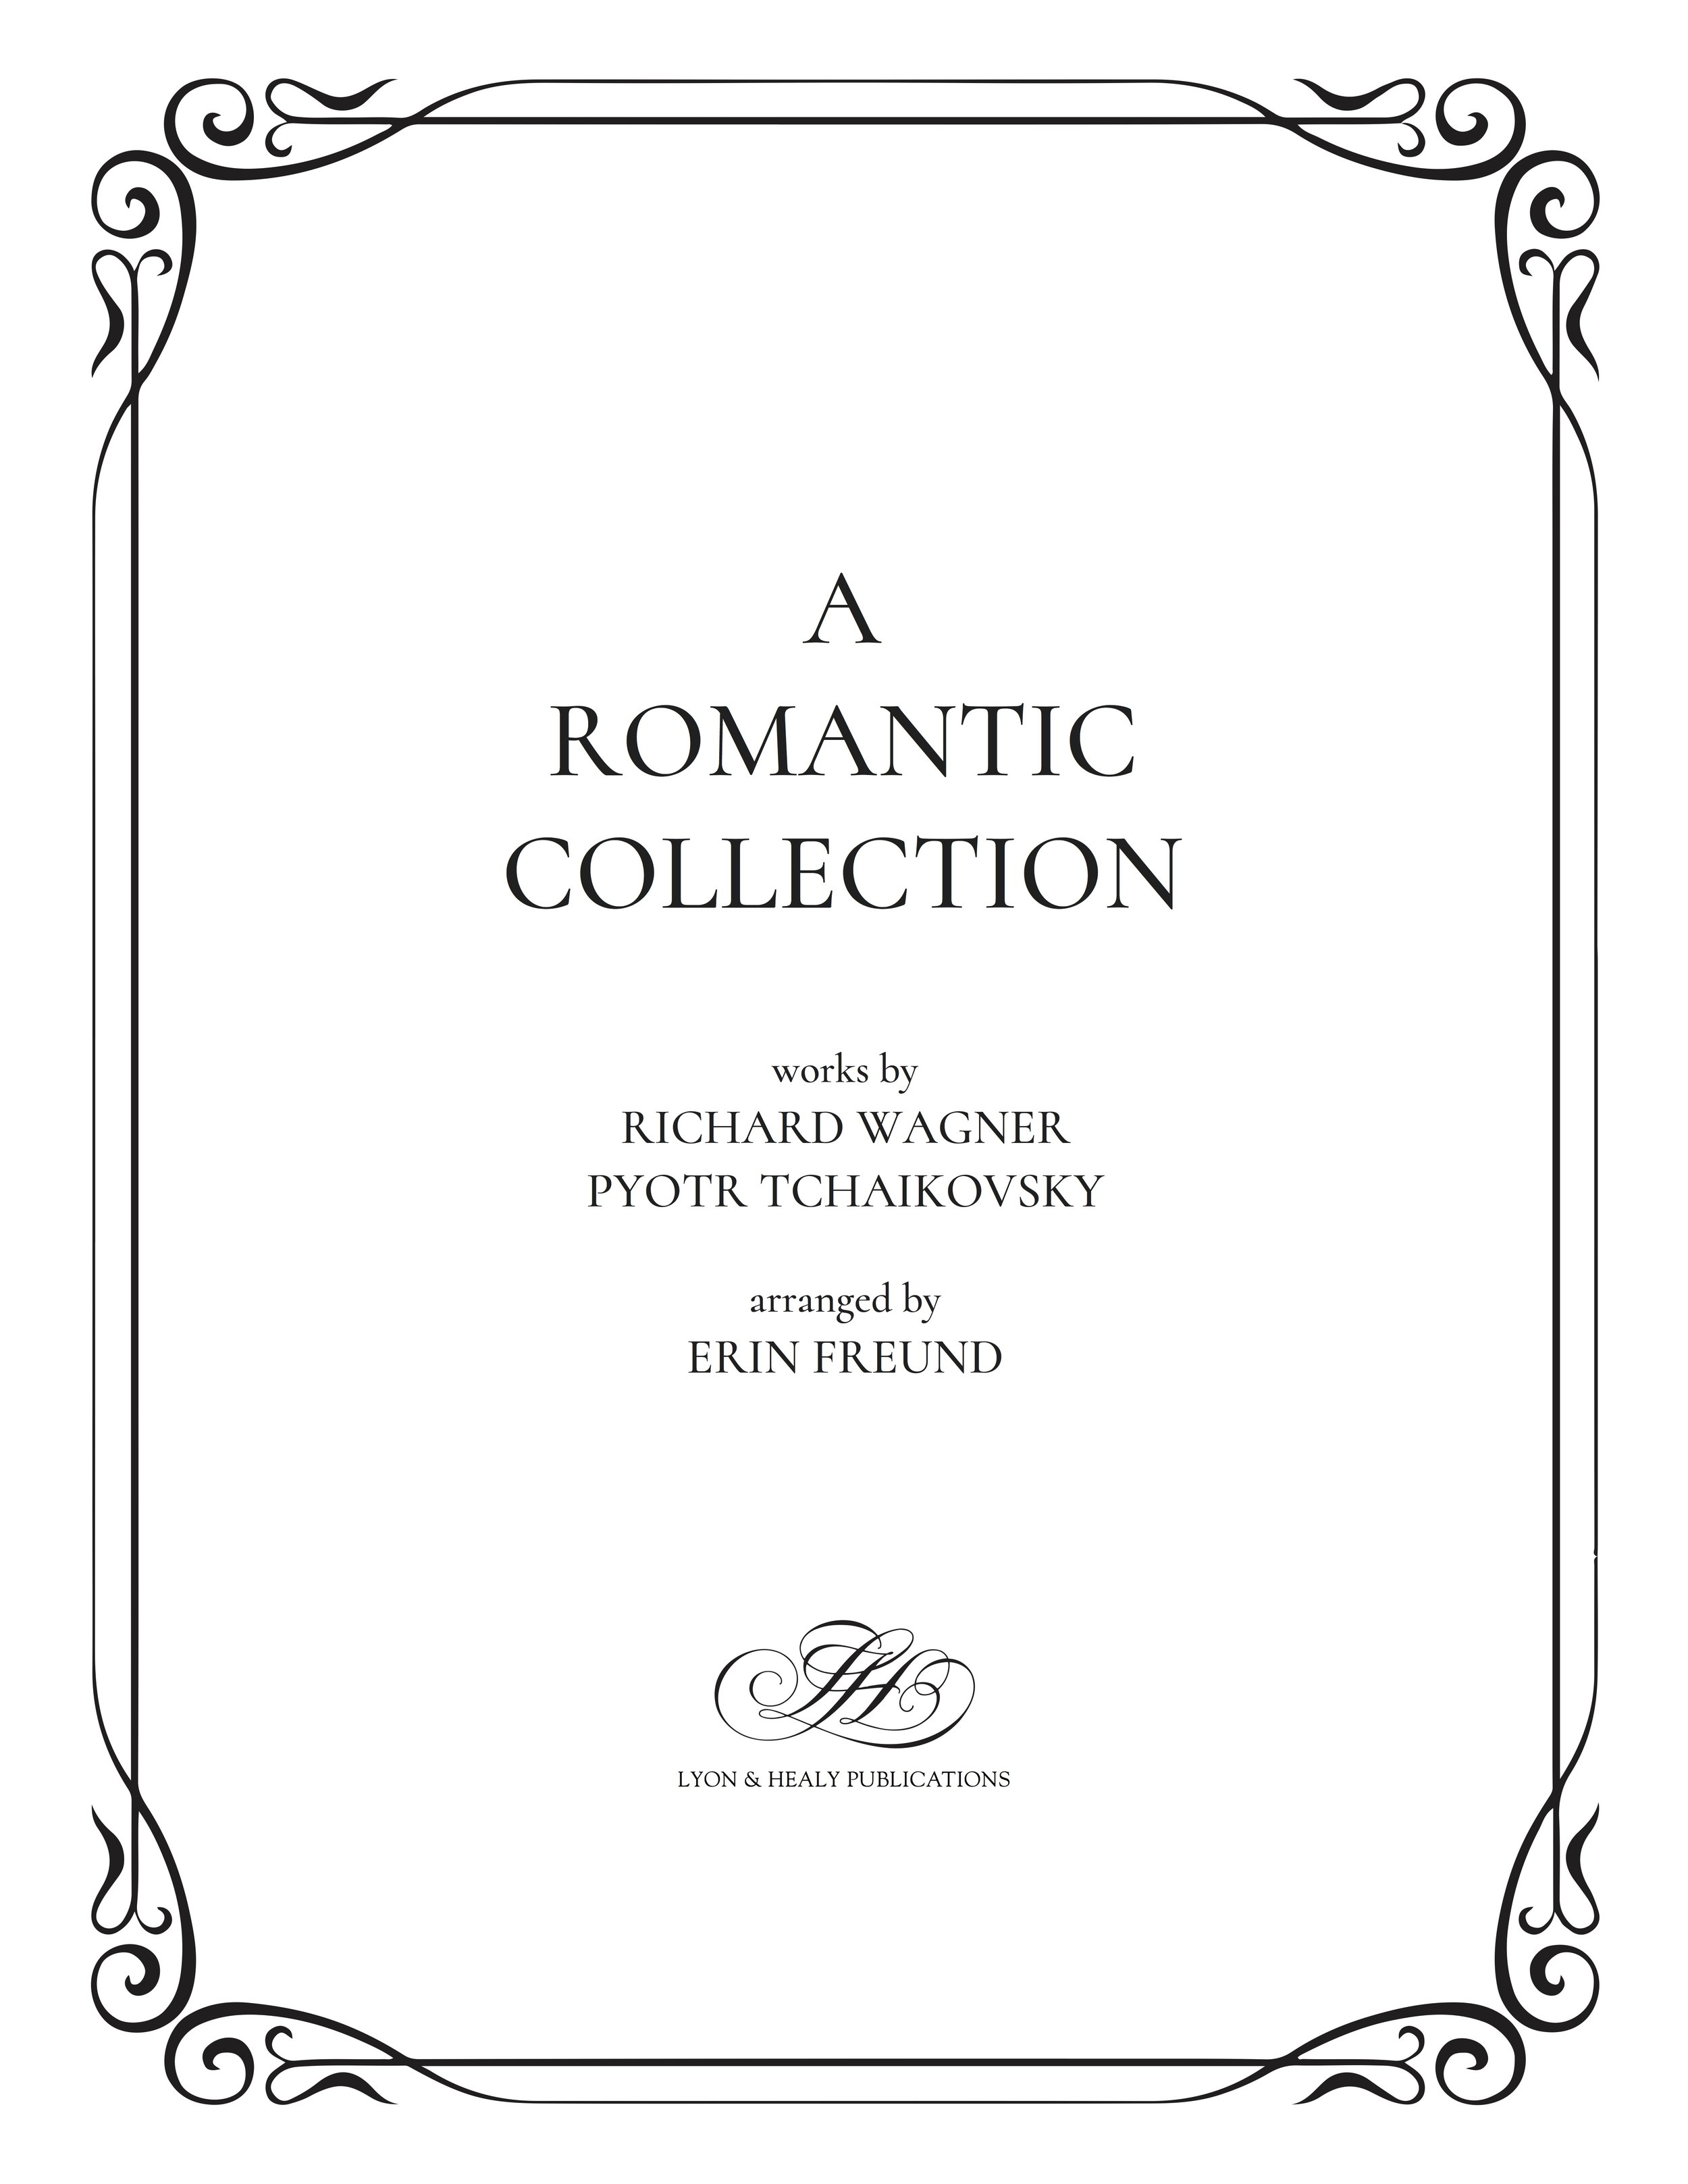 702415-625-PDF - A Romantic Collection - Freund cover.jpg